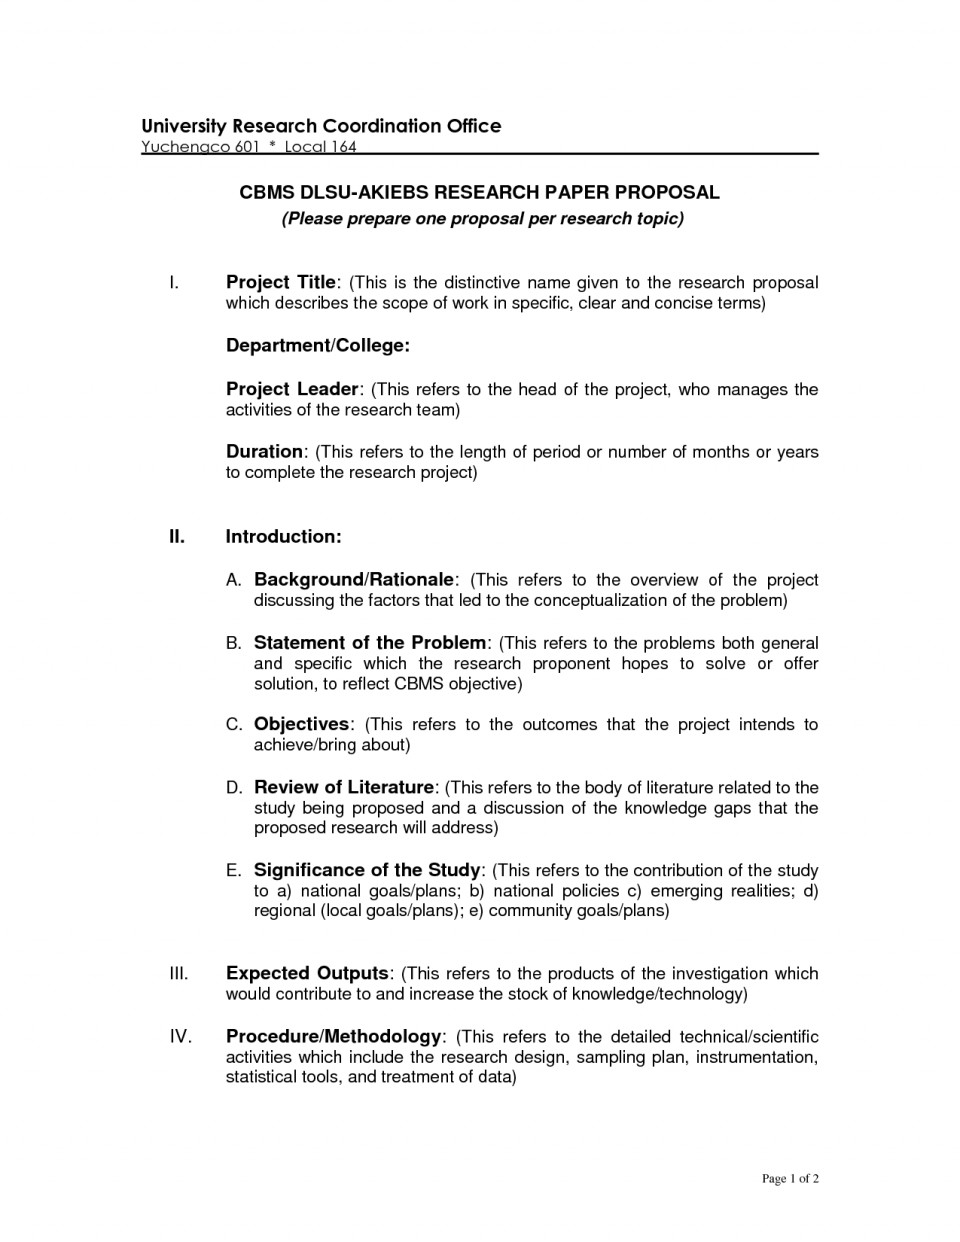 015 Ideas Of Phd Research Proposal Format Example Essay Sample Paper Appendix Mla Astounding Topic Education Psychology Business 960